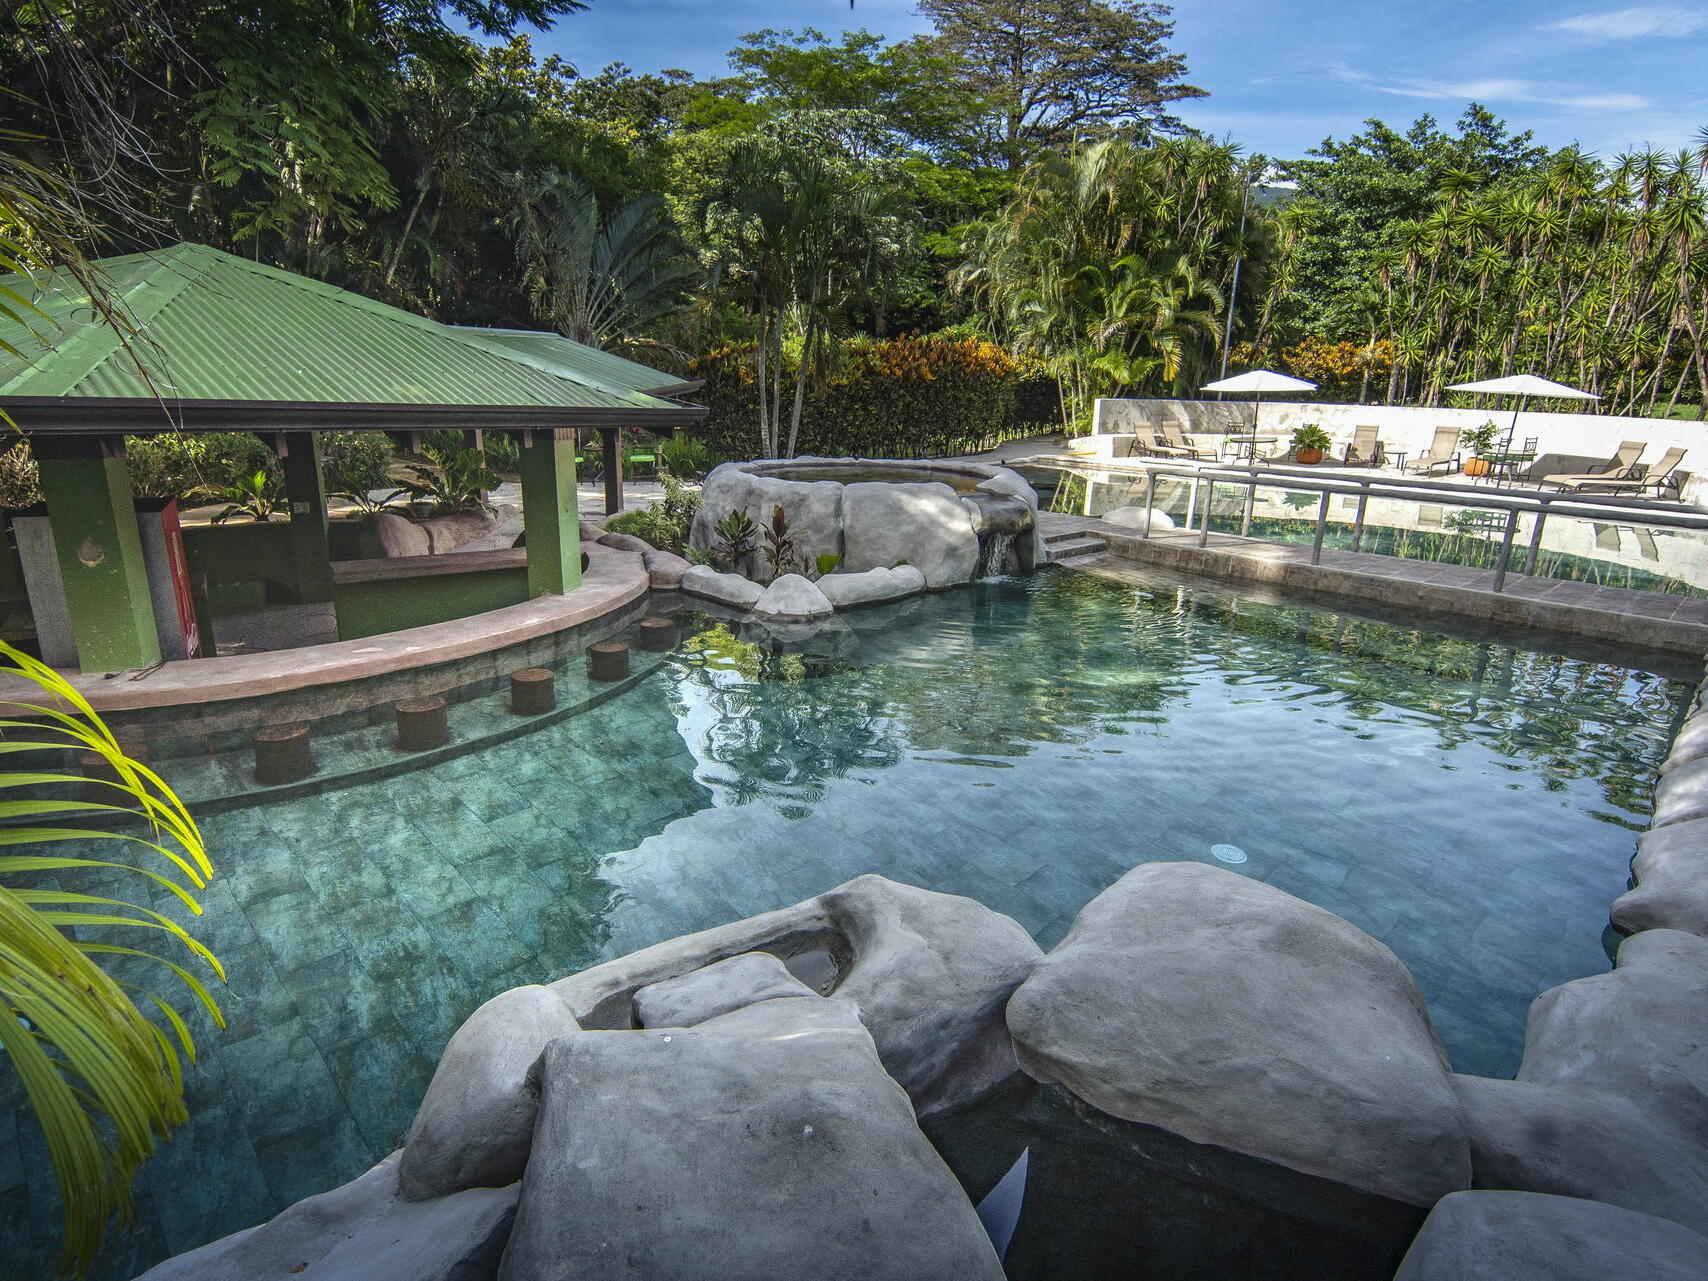 Pool with an eye catching Surrounding at Buena Vista Del Rinco